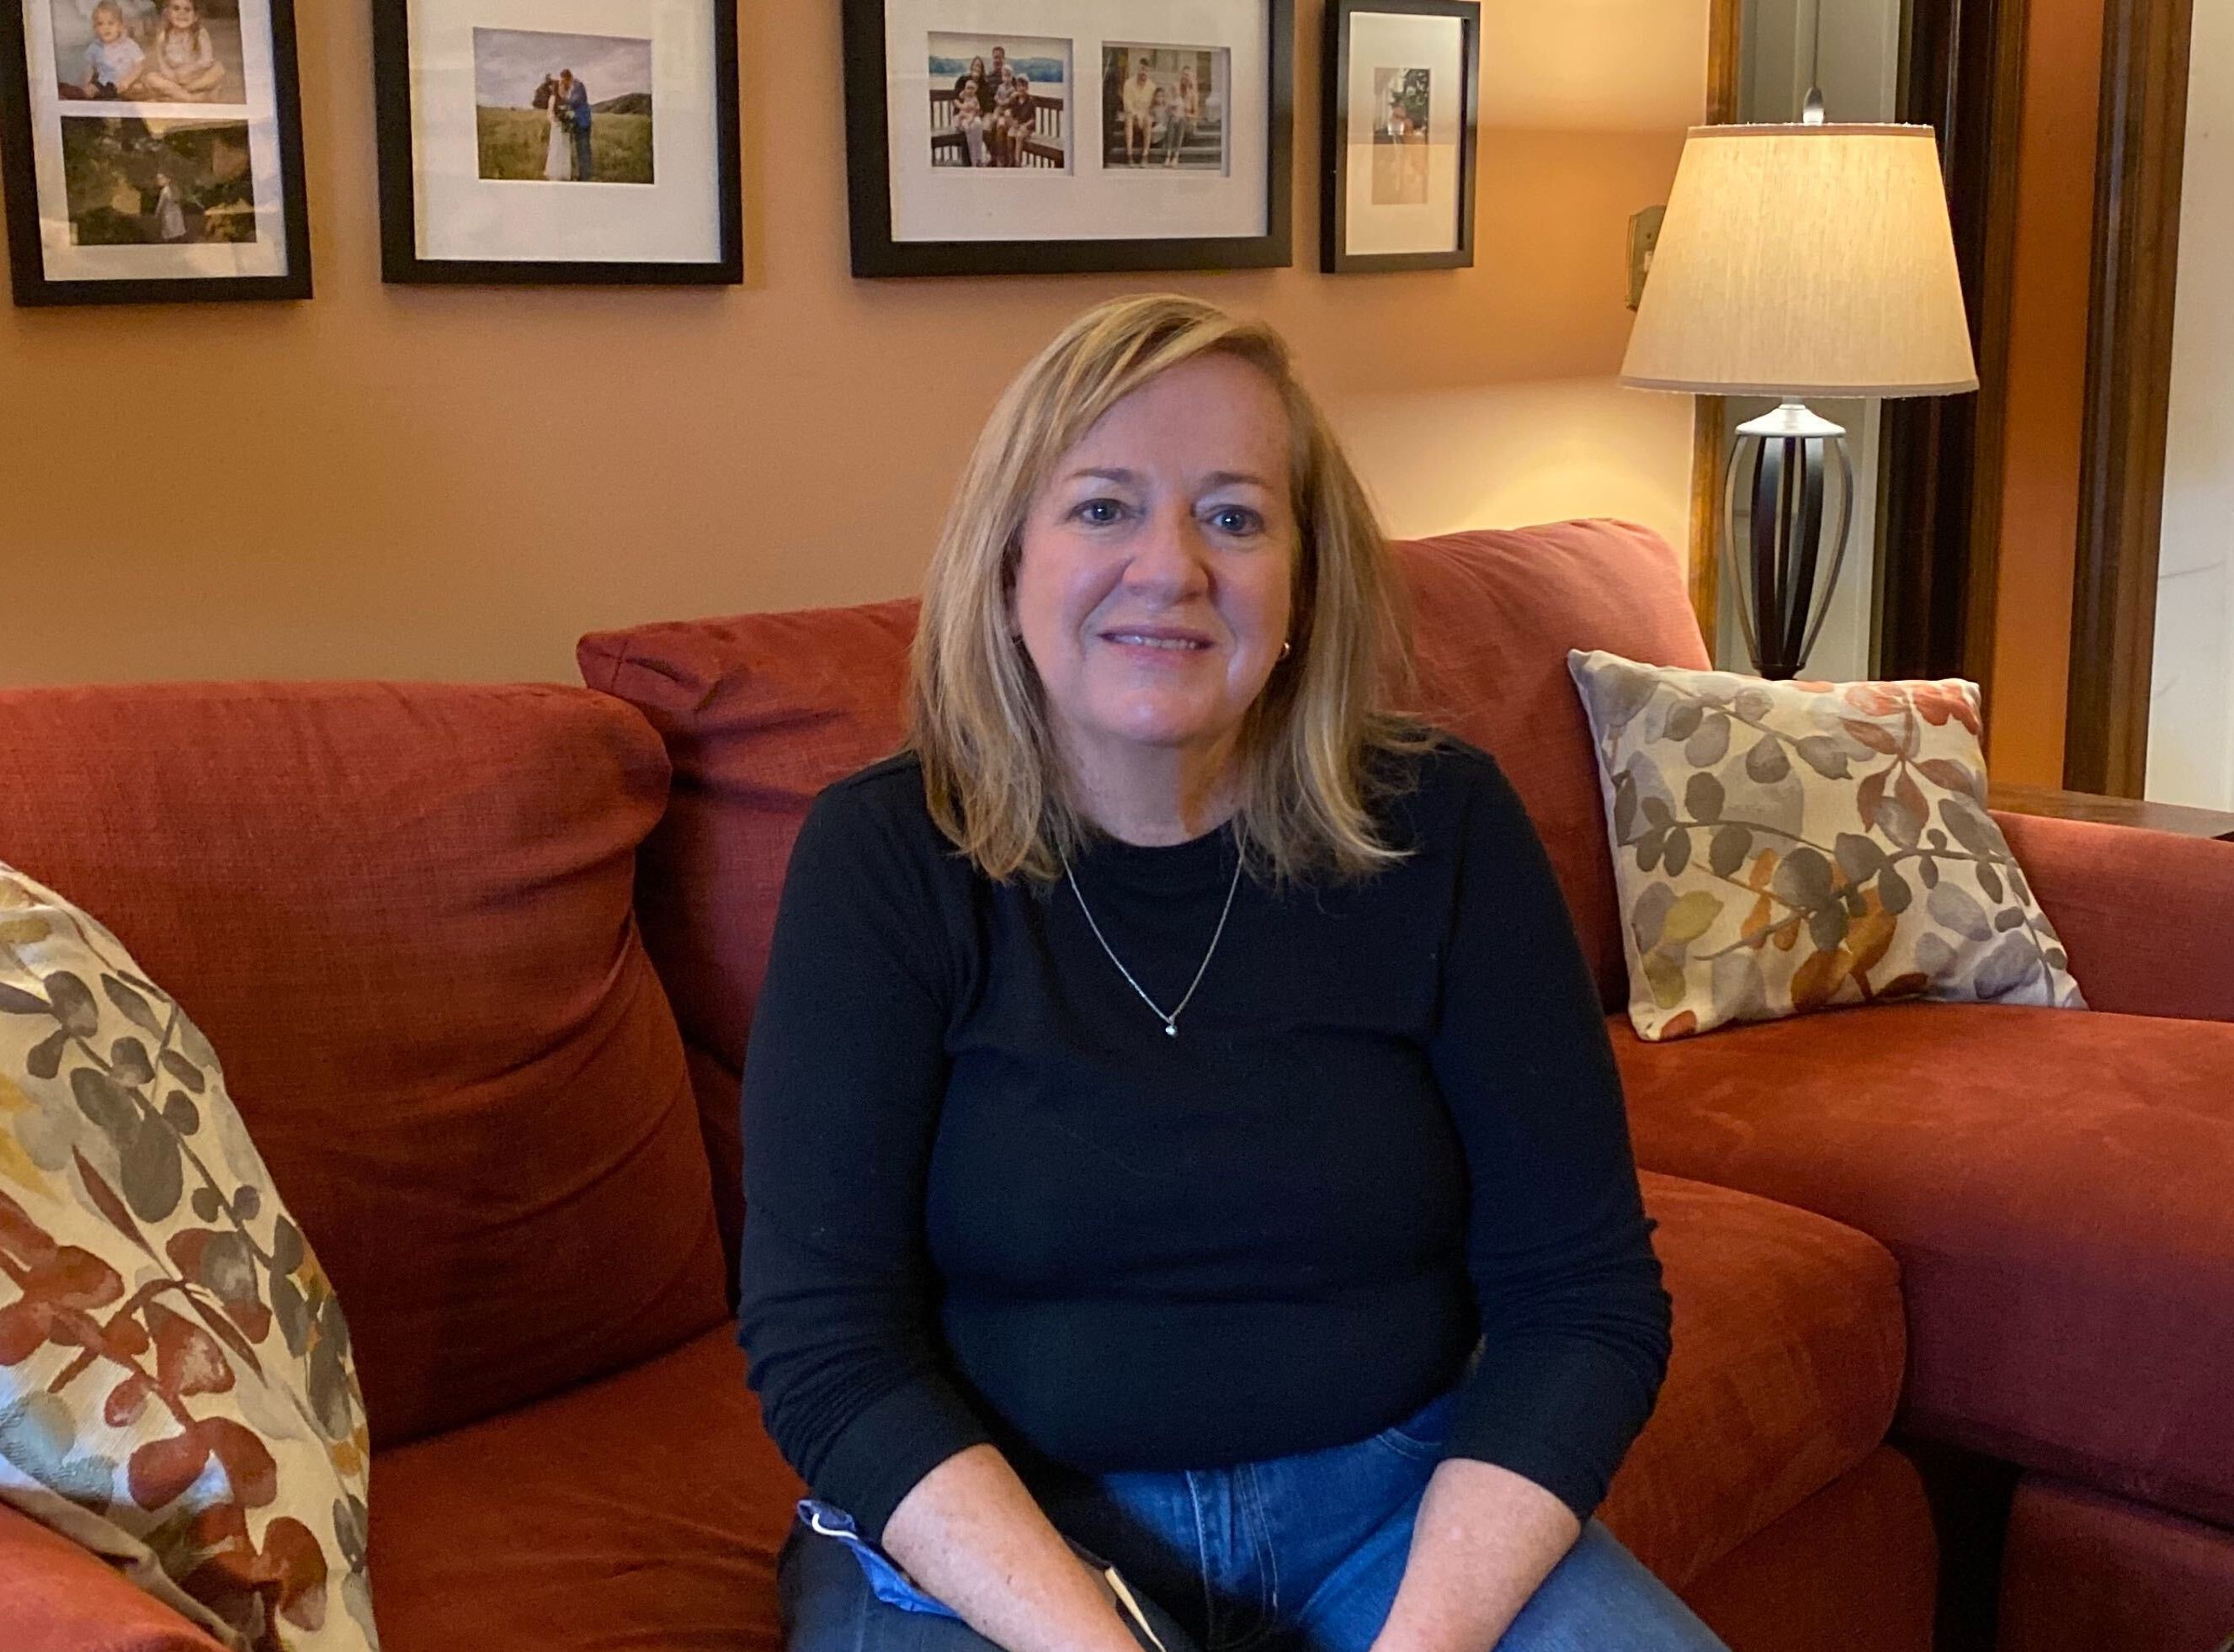 Maryann Frontino sits on a couch